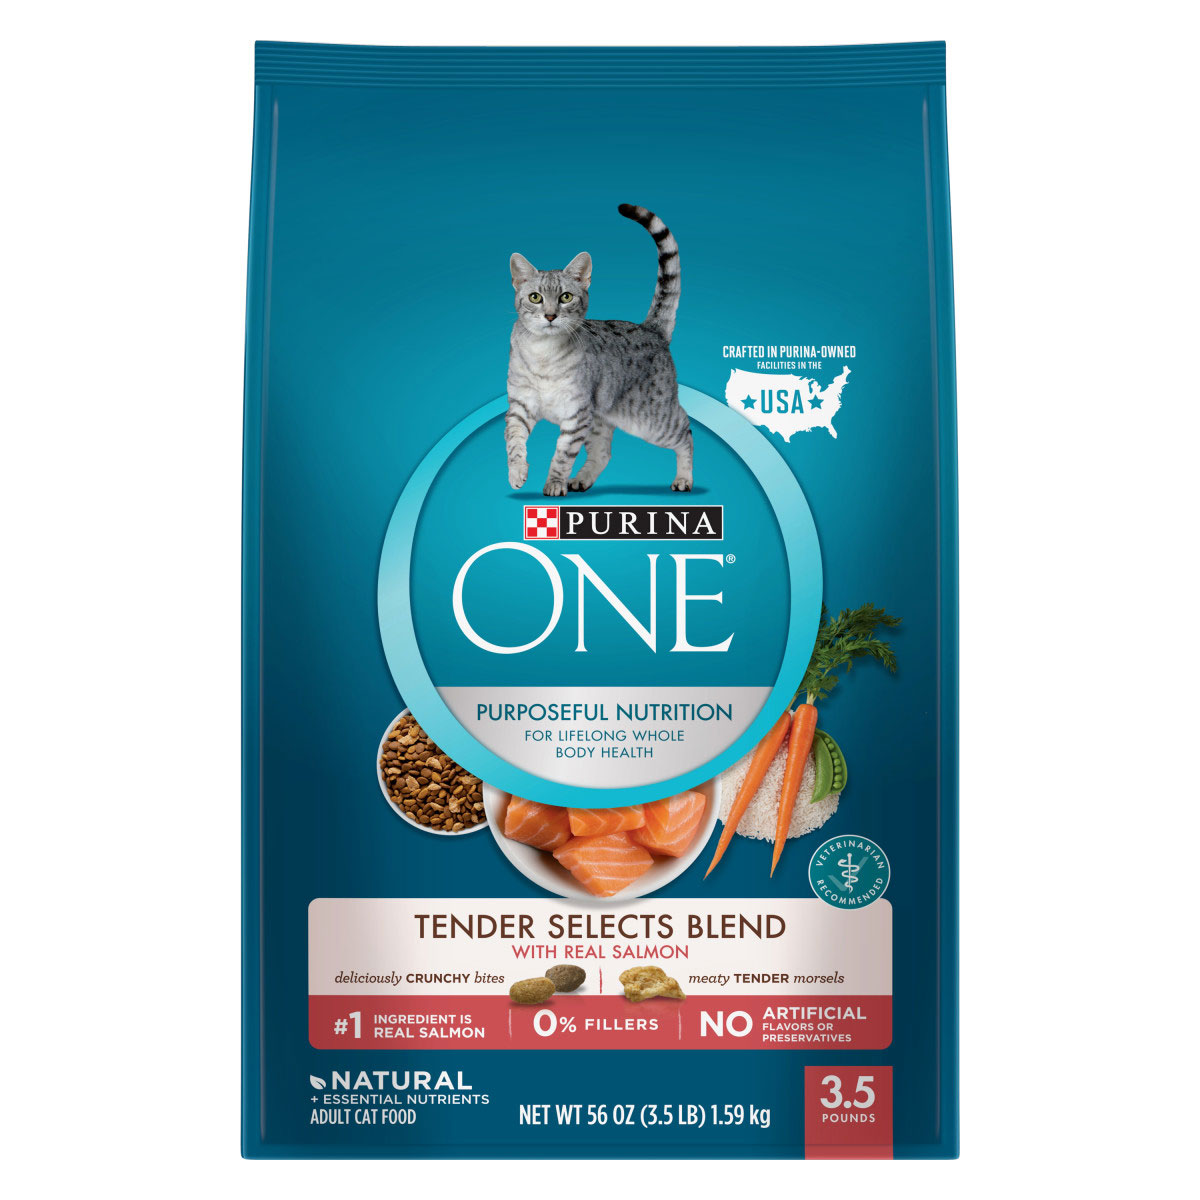 Purina ONE Tender Selects Blend With Real Salmon Adult Dry Cat Food - 3.5 Pound Bag